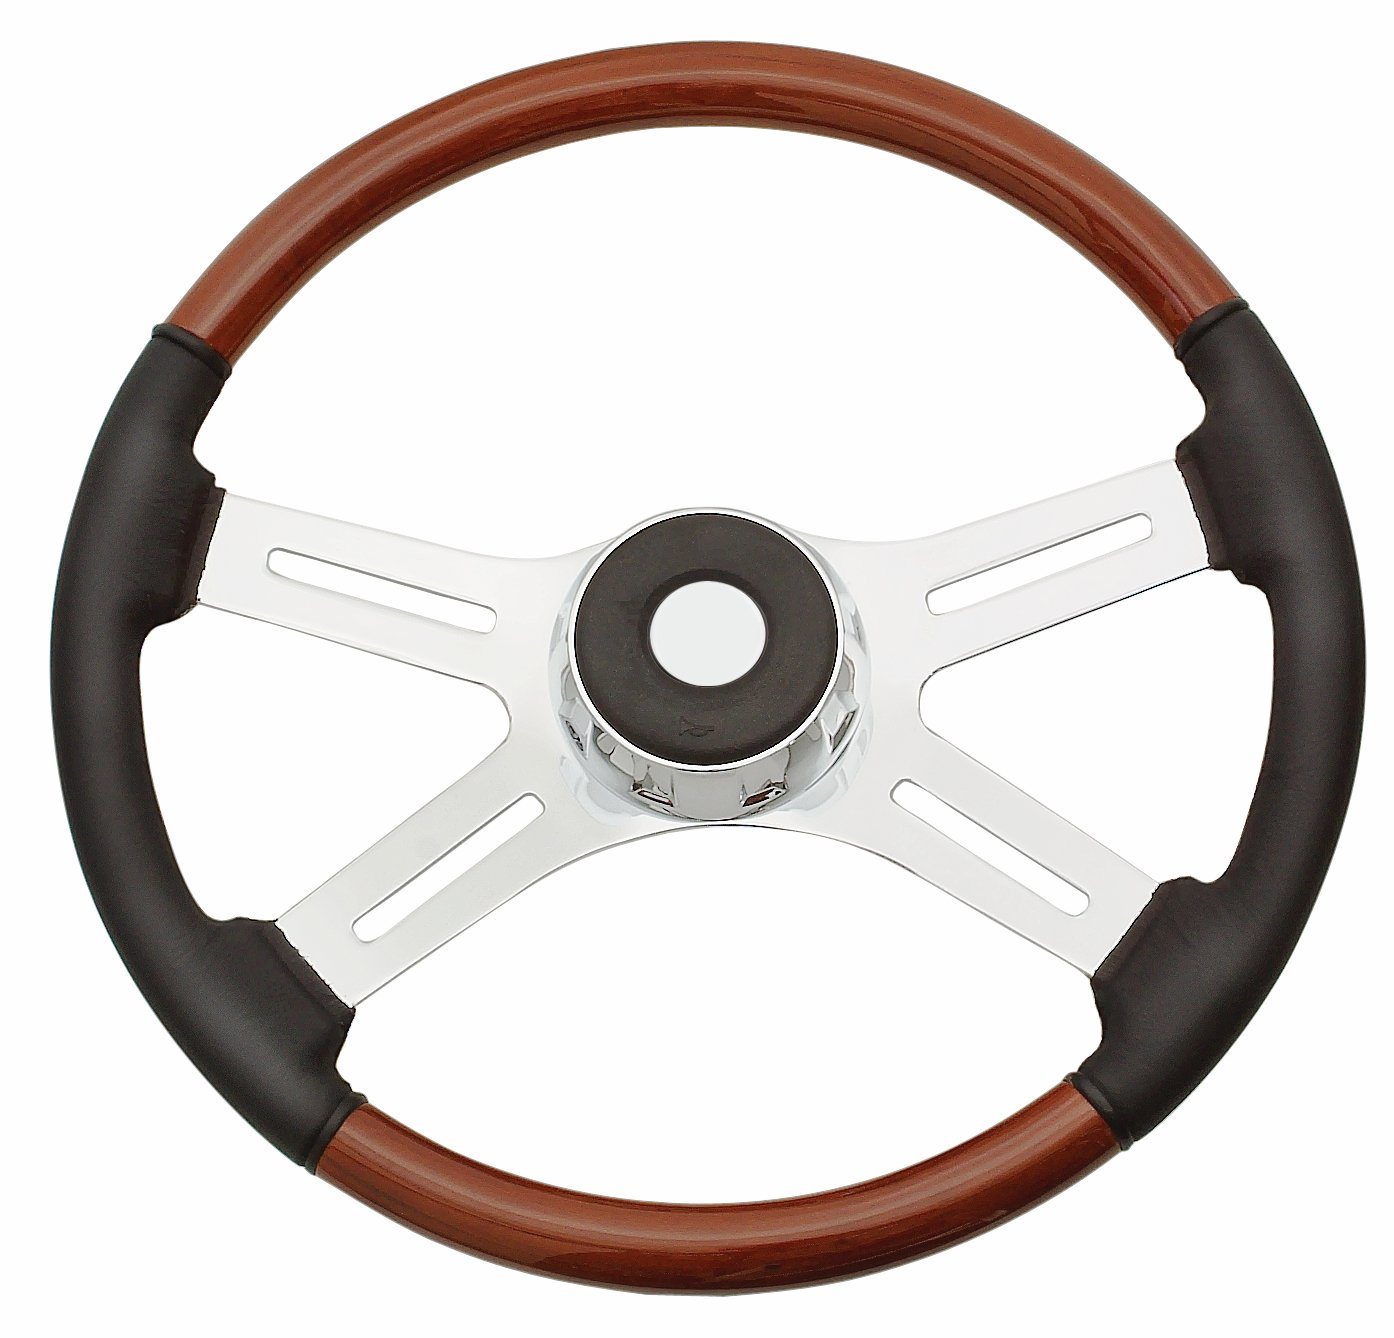 Woody's WP-SWF8901L Rosewood Chrome Truck Steering Wheel (Beautiful African Hardwood) by Woody's